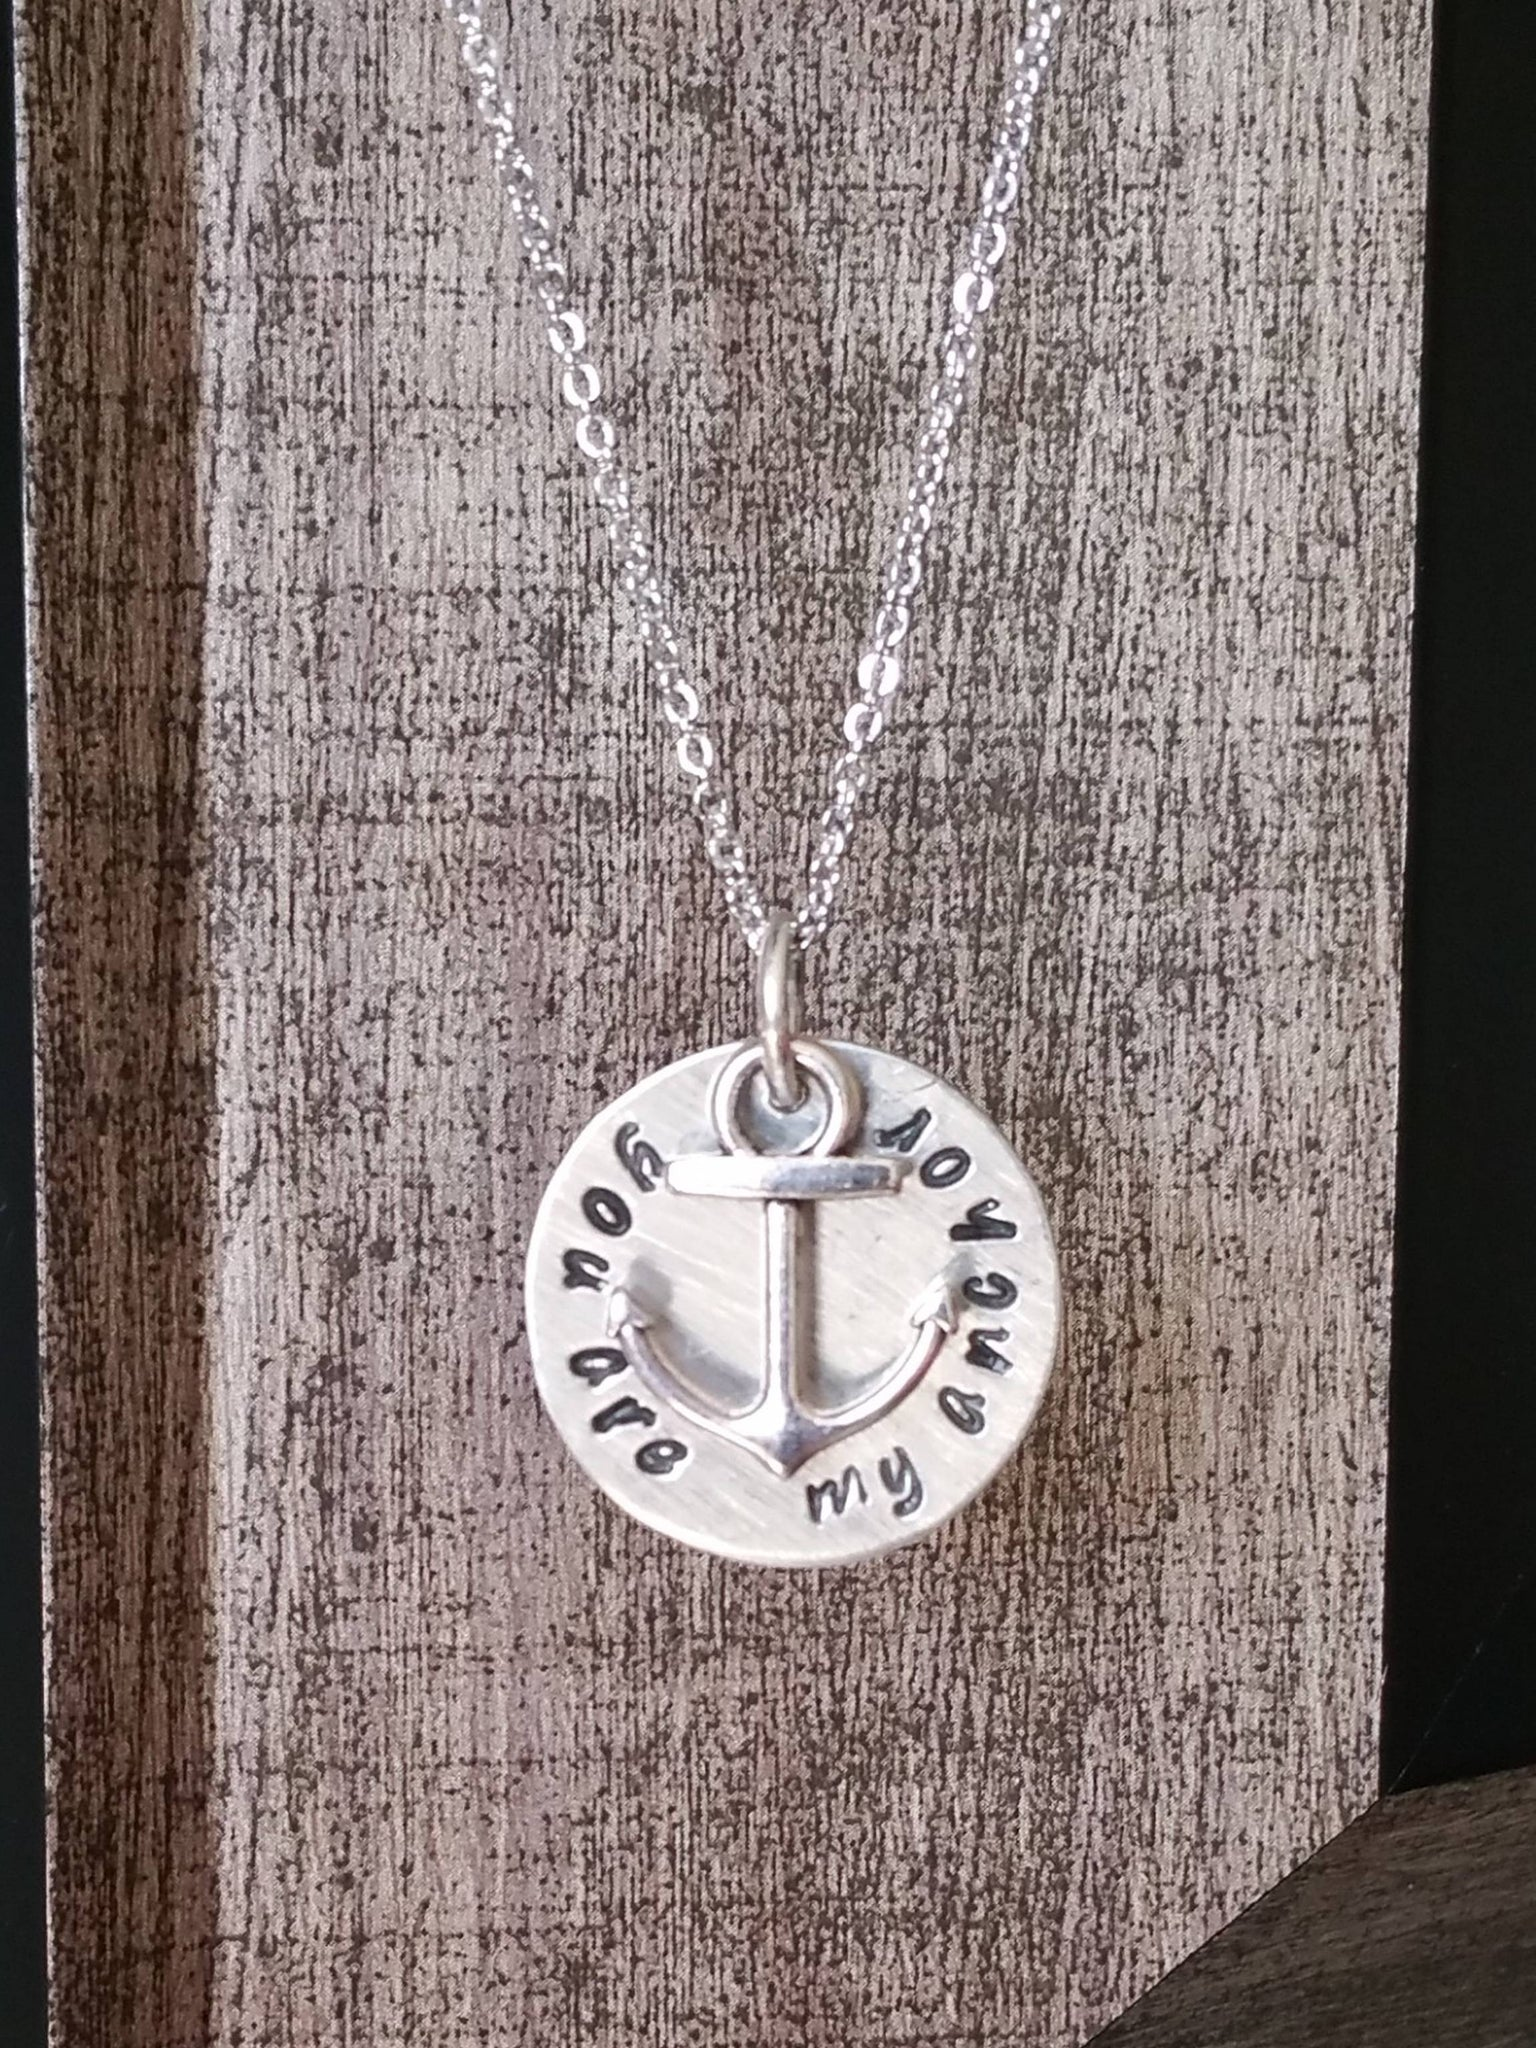 Personalized circle pendant with an anchor charm necklace